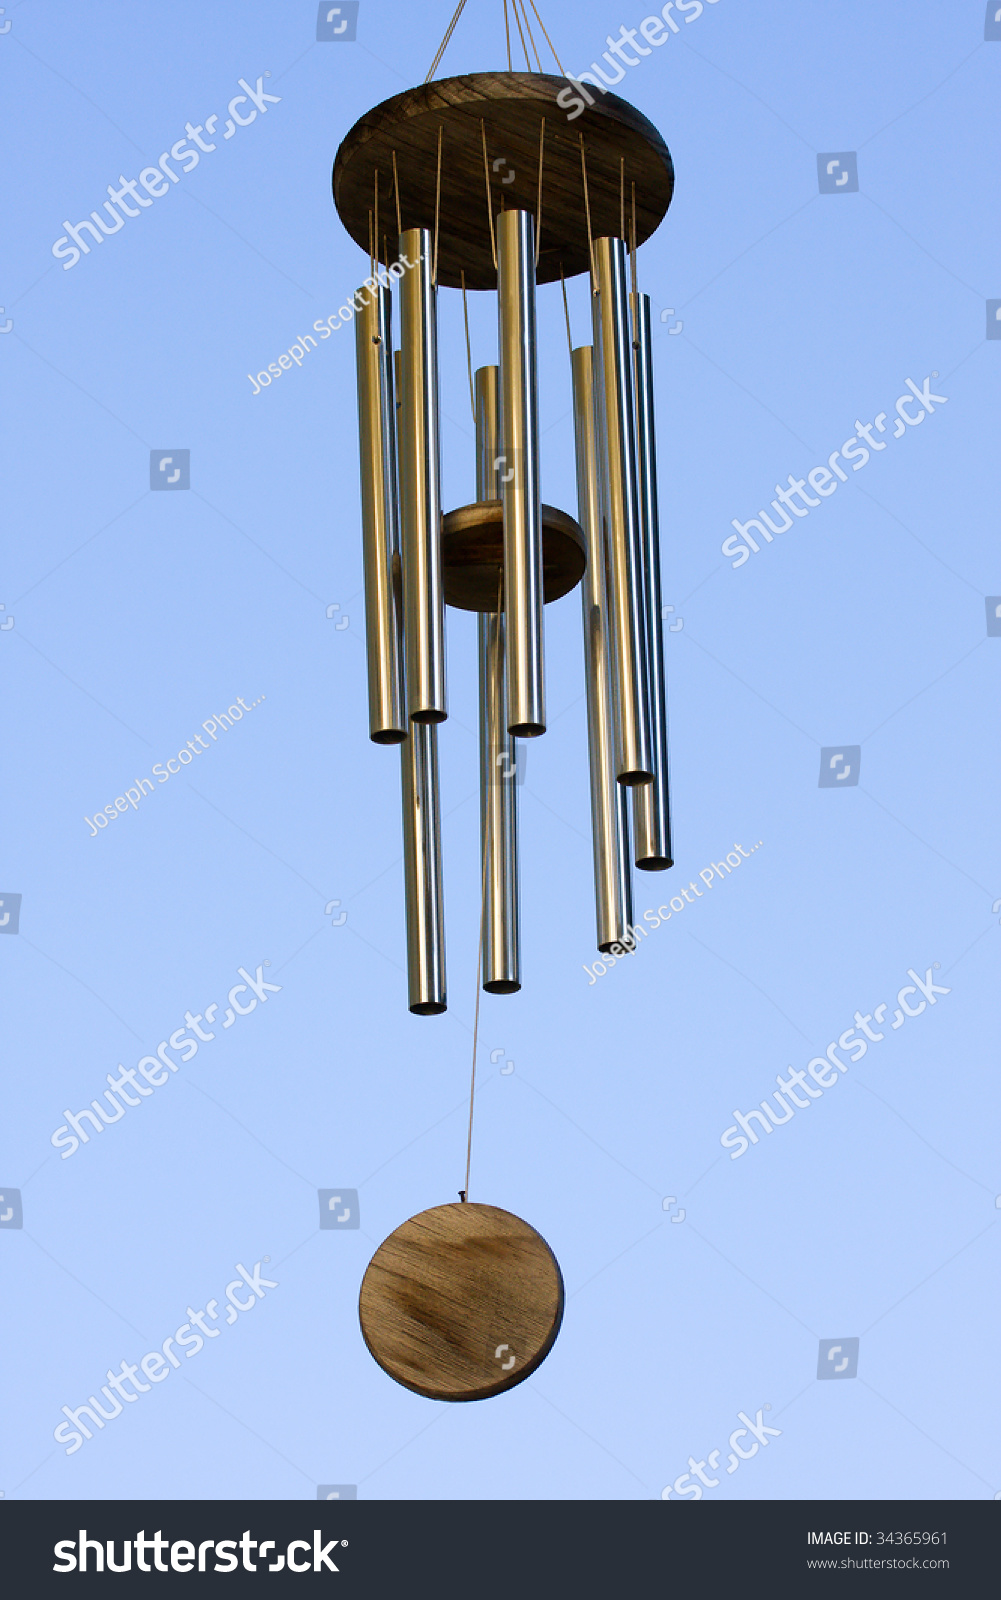 Wind Chimes Blowing In The Summer Air. Stock Photo ...